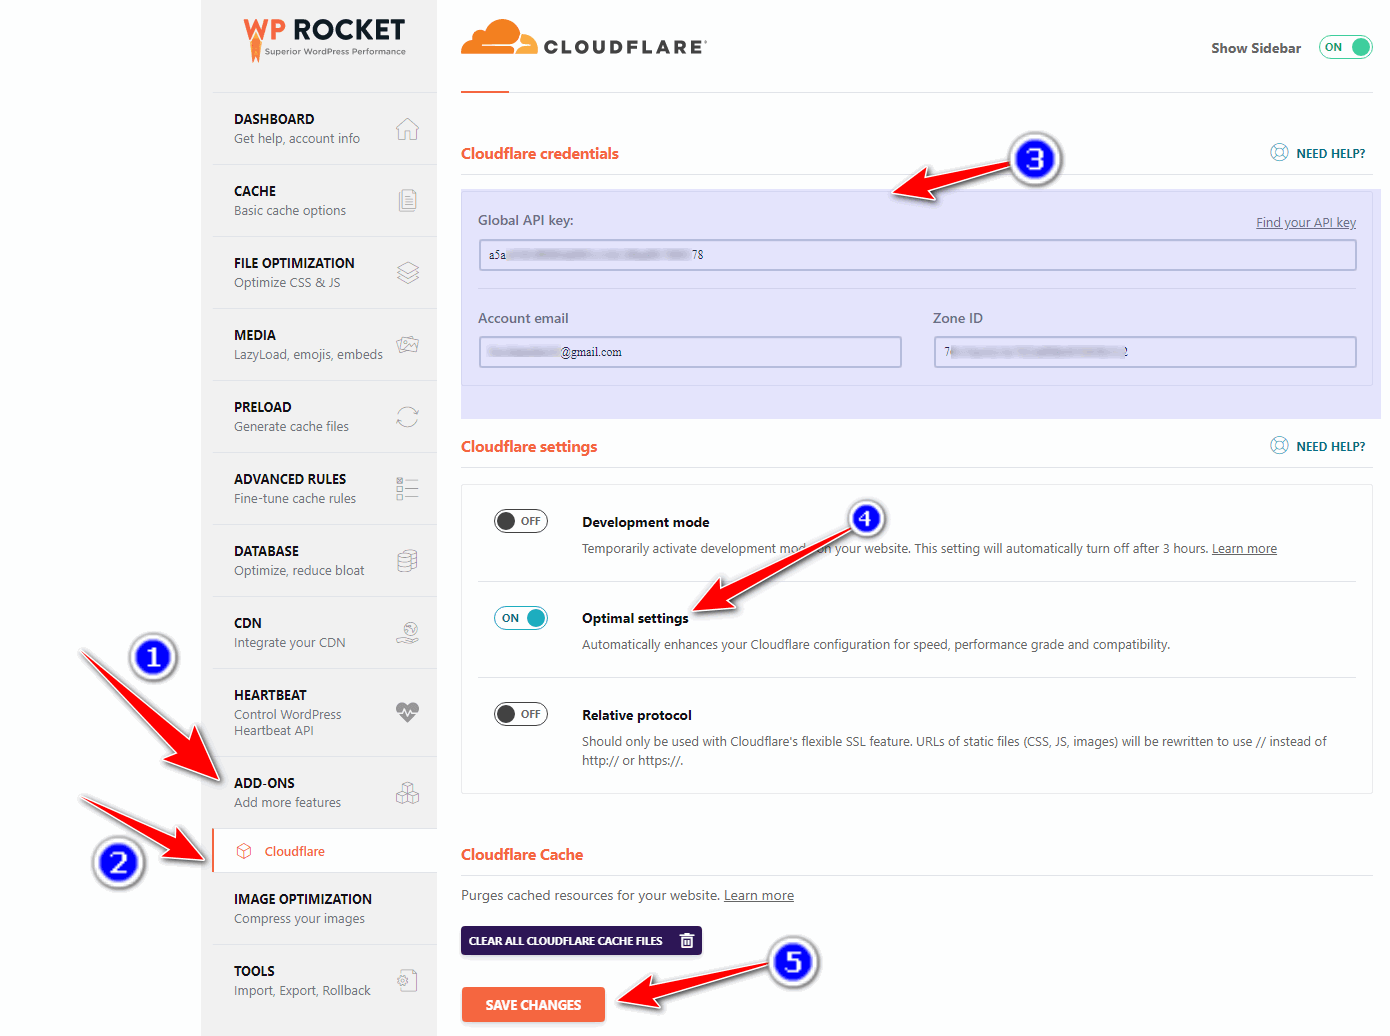 cloudflare credentials and configuration in wp rocket